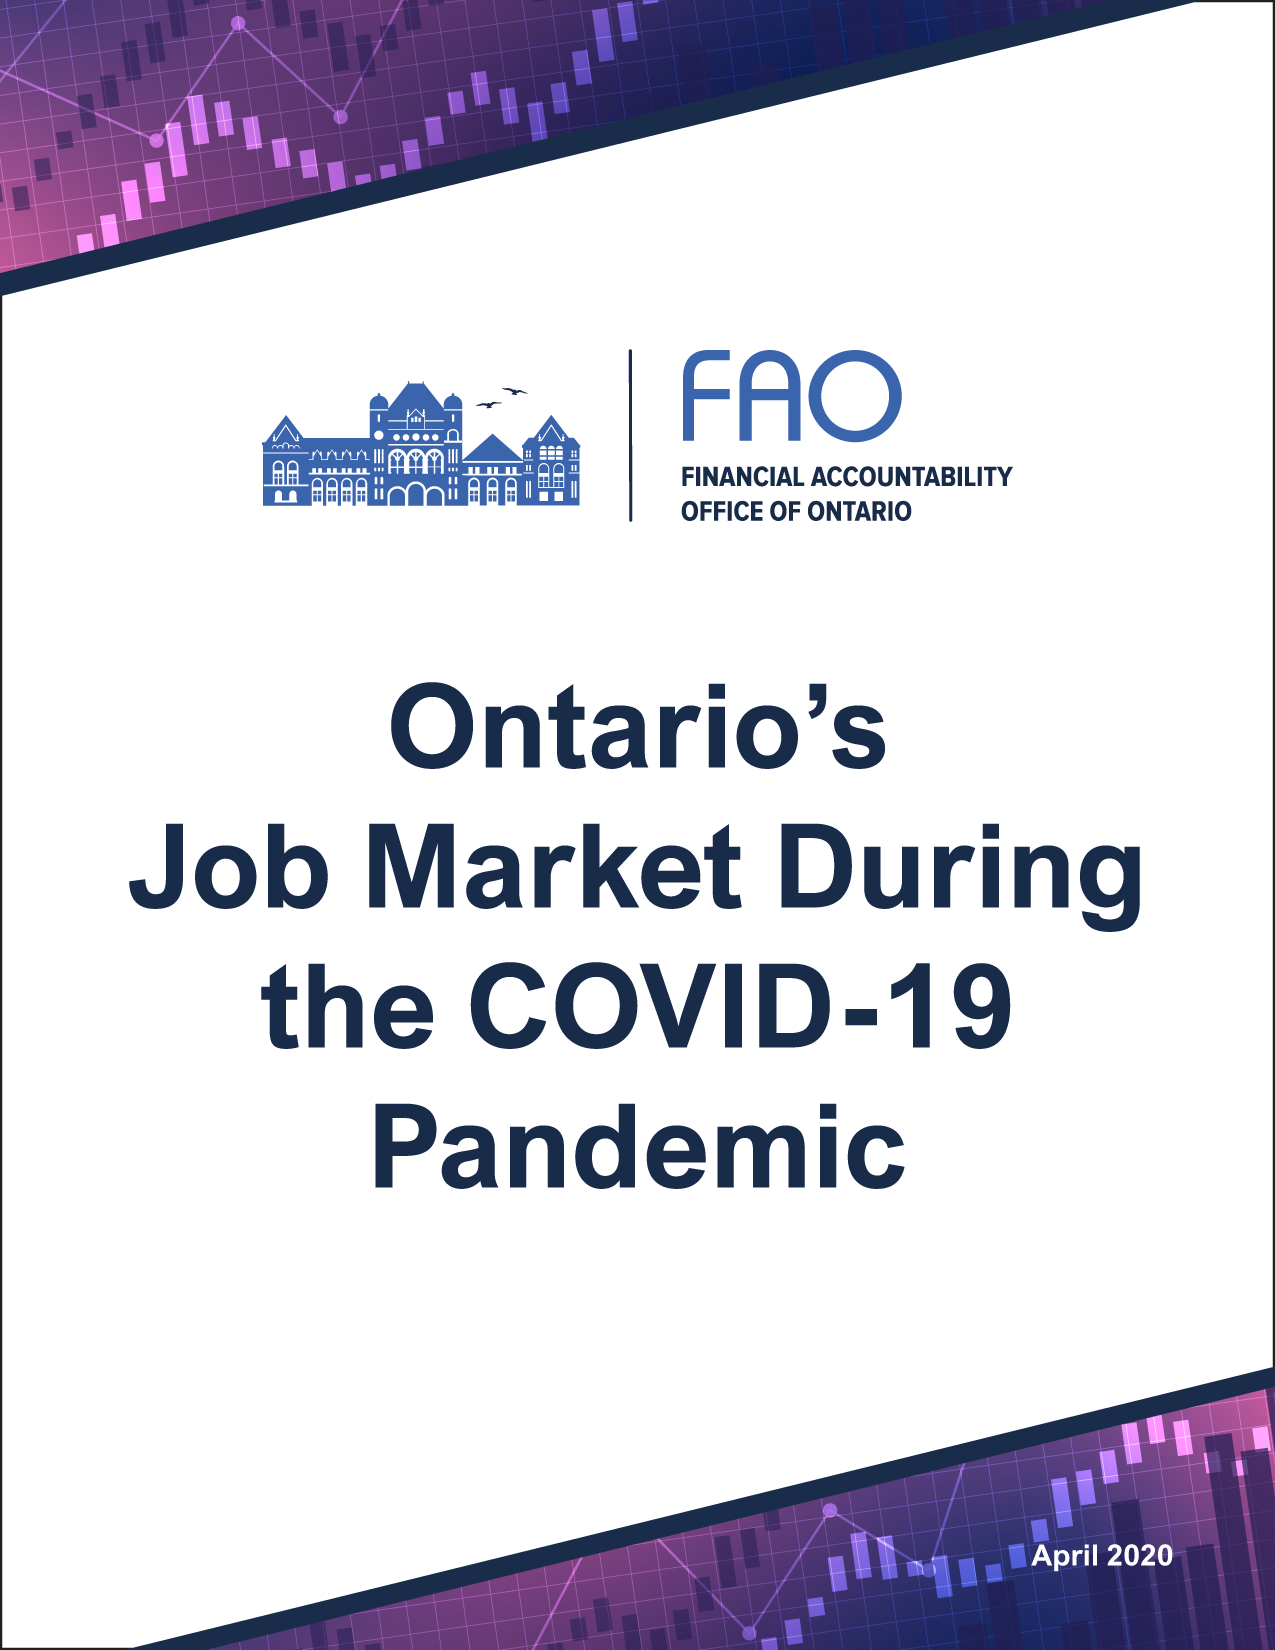 Ontario's Job Market during the COVID-19 Pandemic